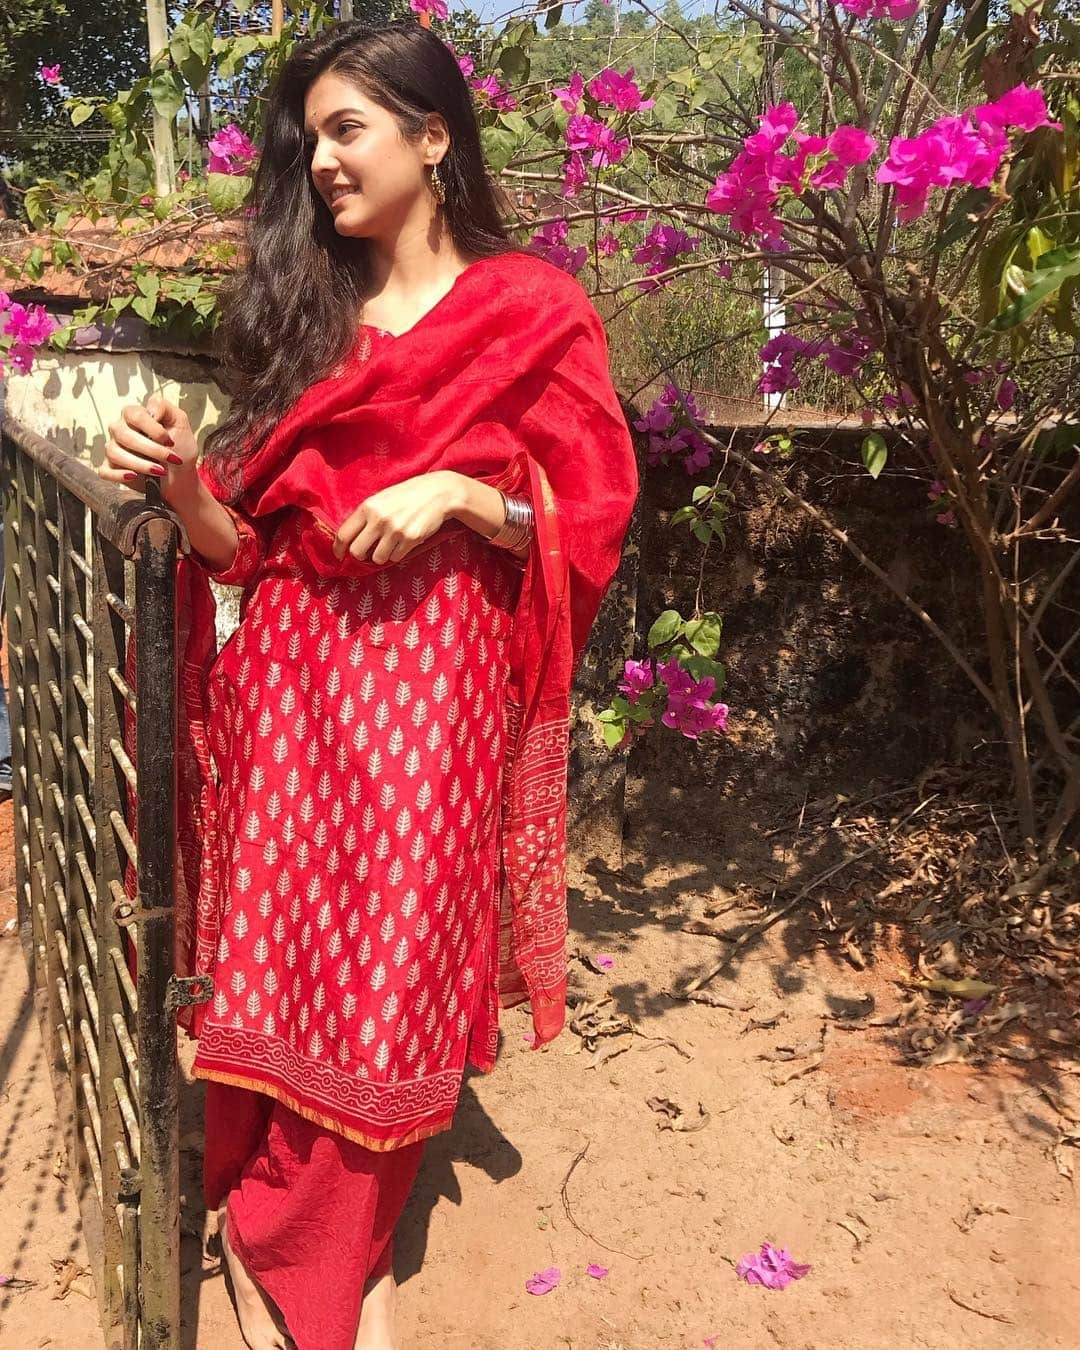 Ashrita Shetty in Red is Unmissable   Tamil Actress is Manish Pandey s Wife